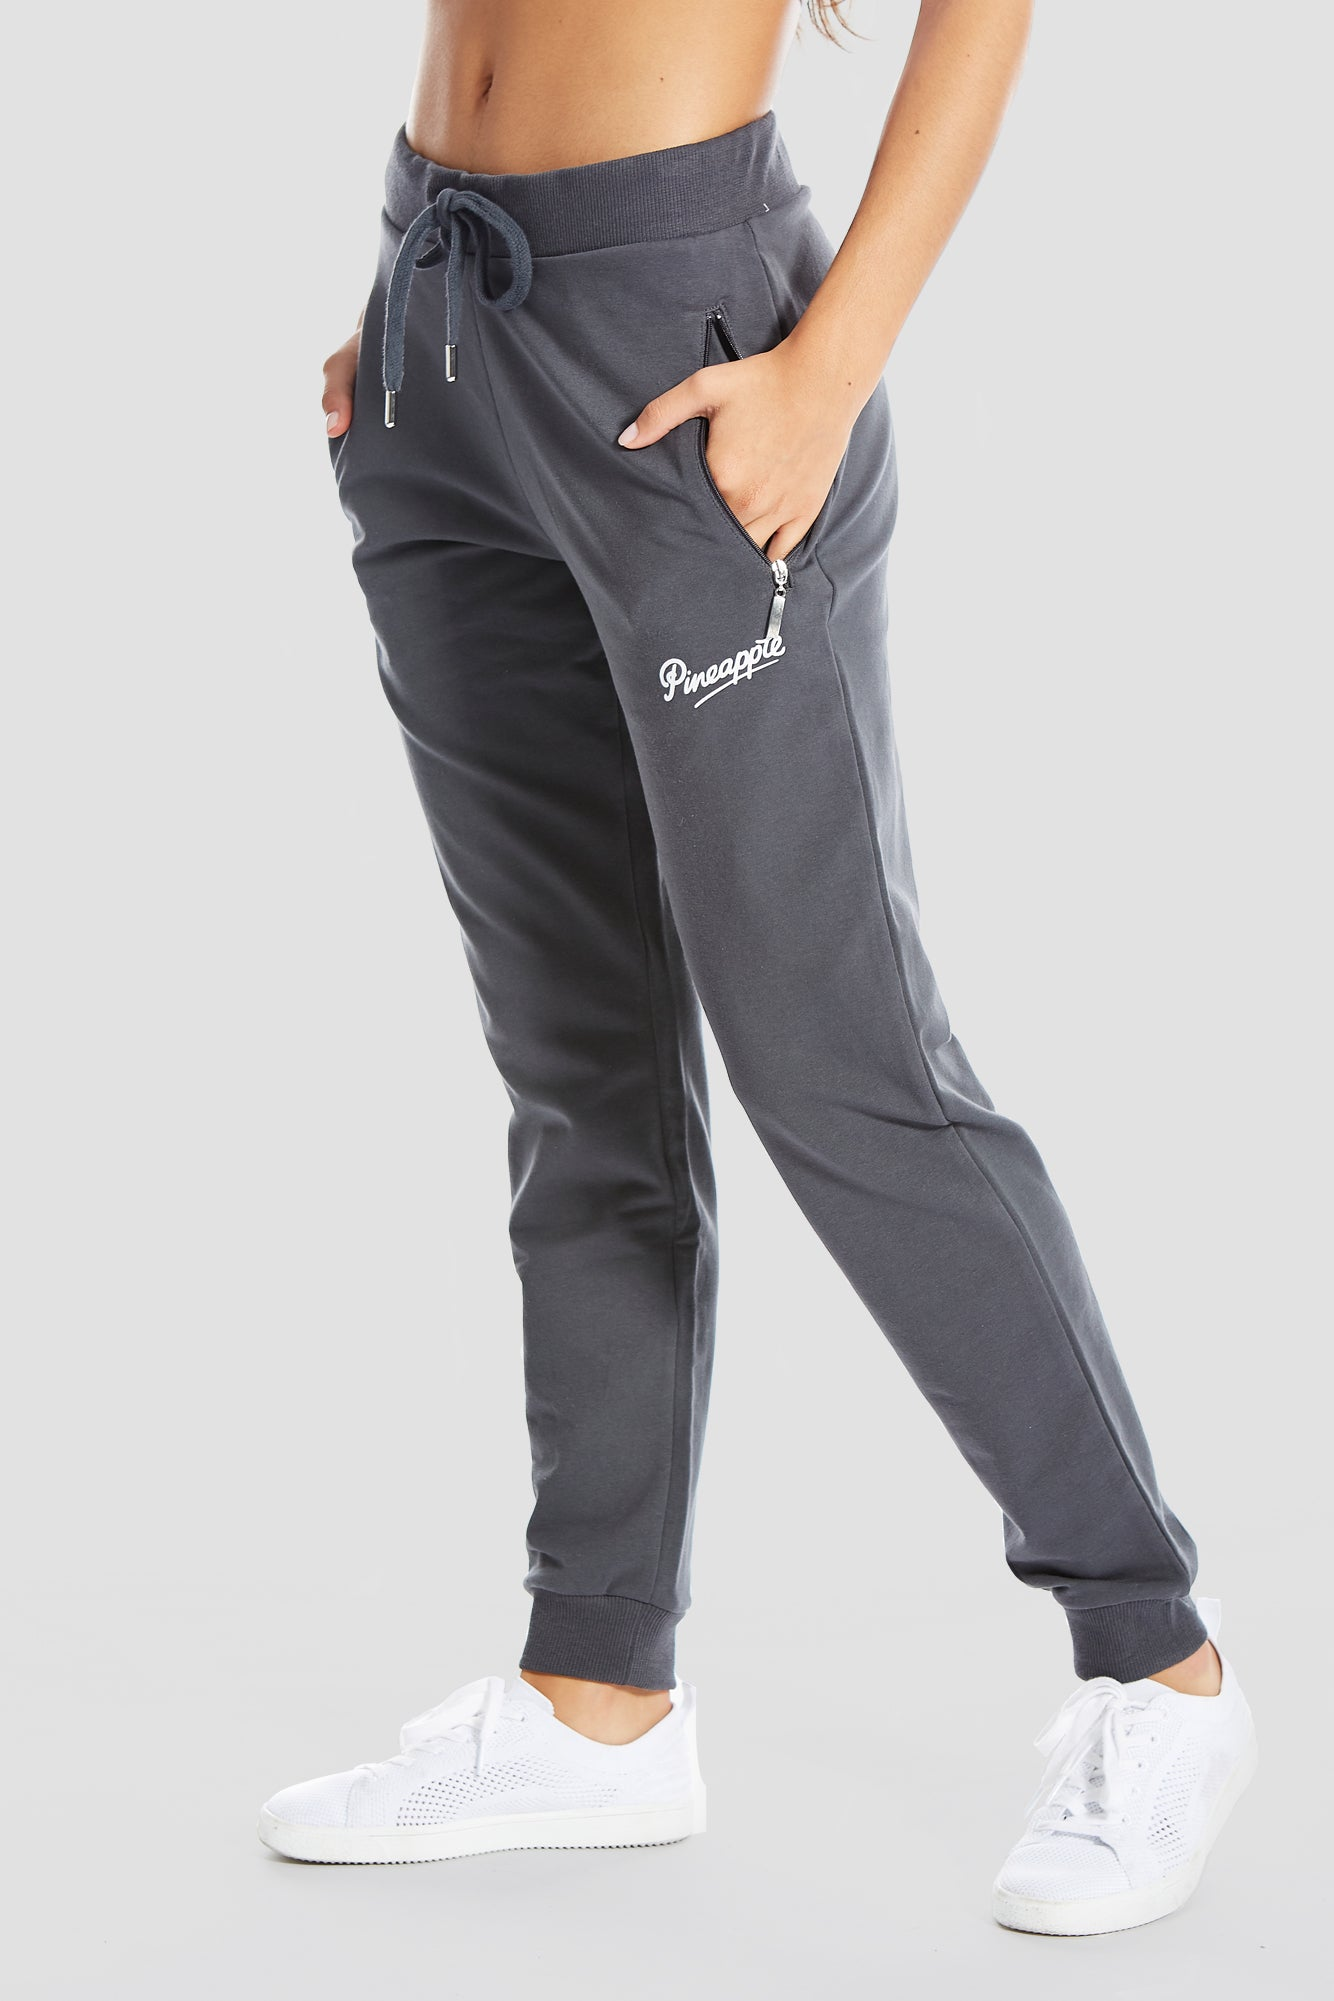 Pineapple Dancewear Women's Charcoal Zip Skinny Joggers